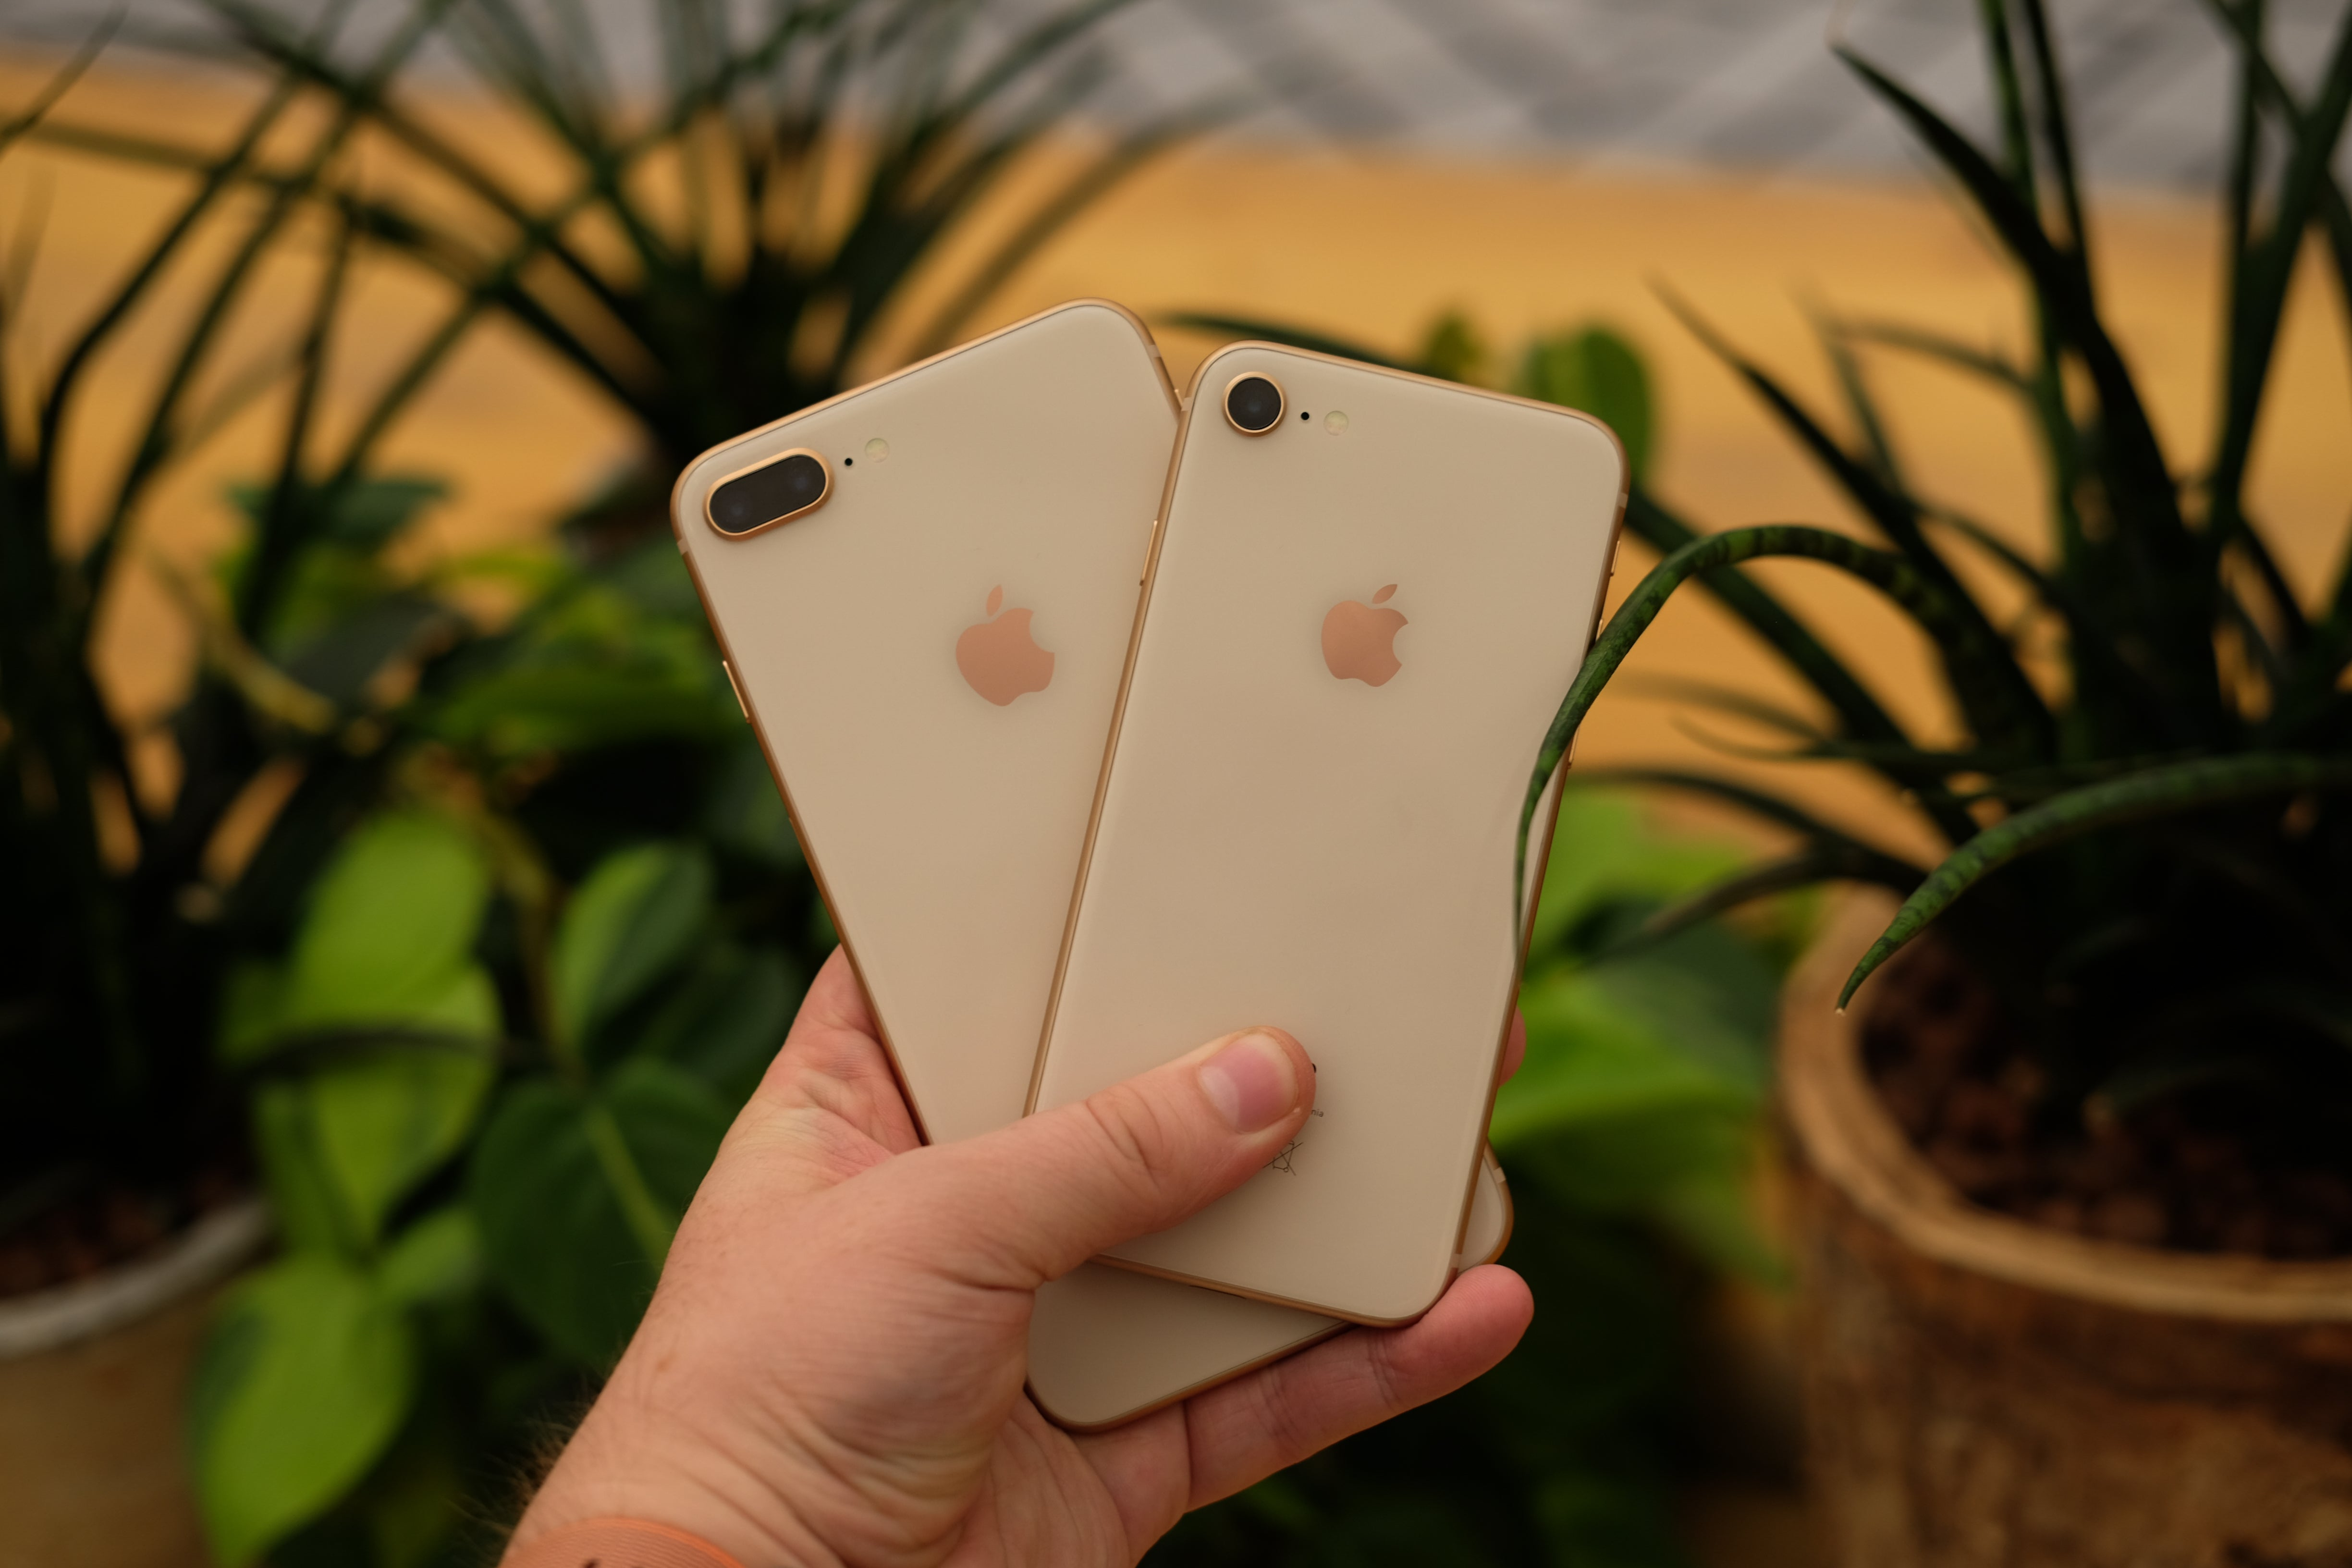 Iphone 8 Review Battery Life And Verdict Trusted Reviews Hp 6s Plus 64gb No Finger Gold